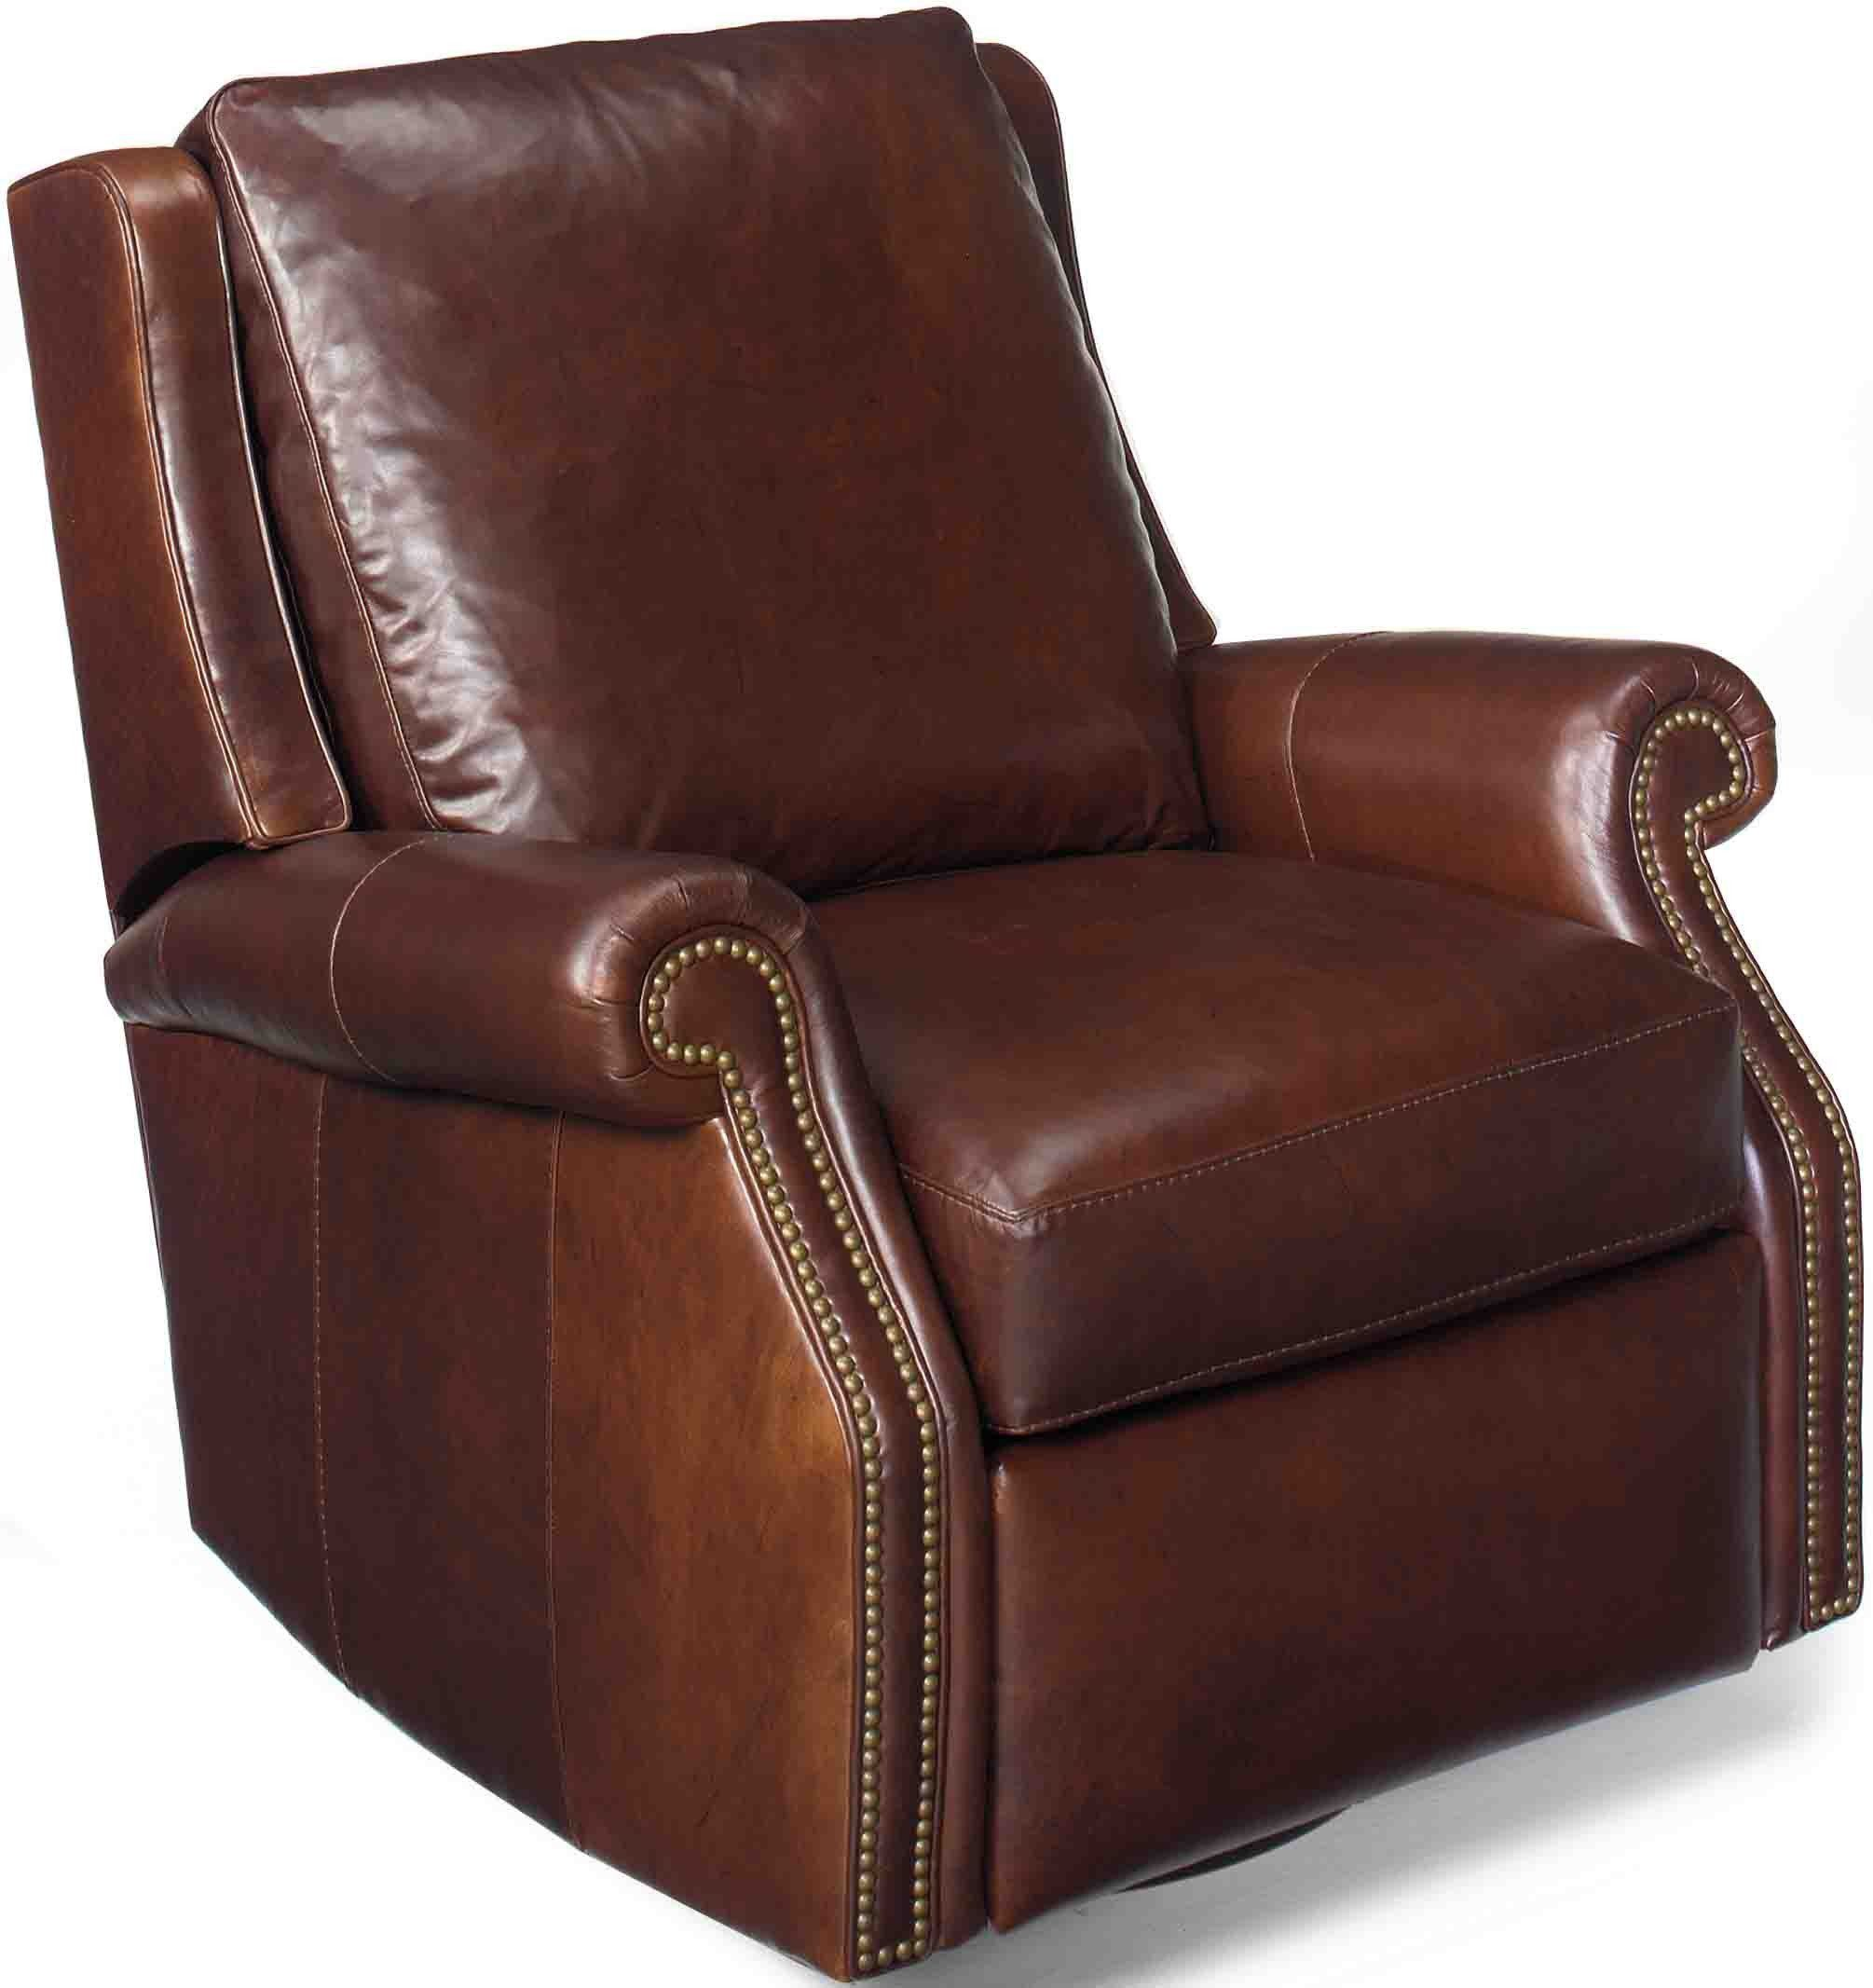 Leather Swivel Recliner Chairs Bradington Young Barcelo Swivel Glider Recliner By 7411 Sg